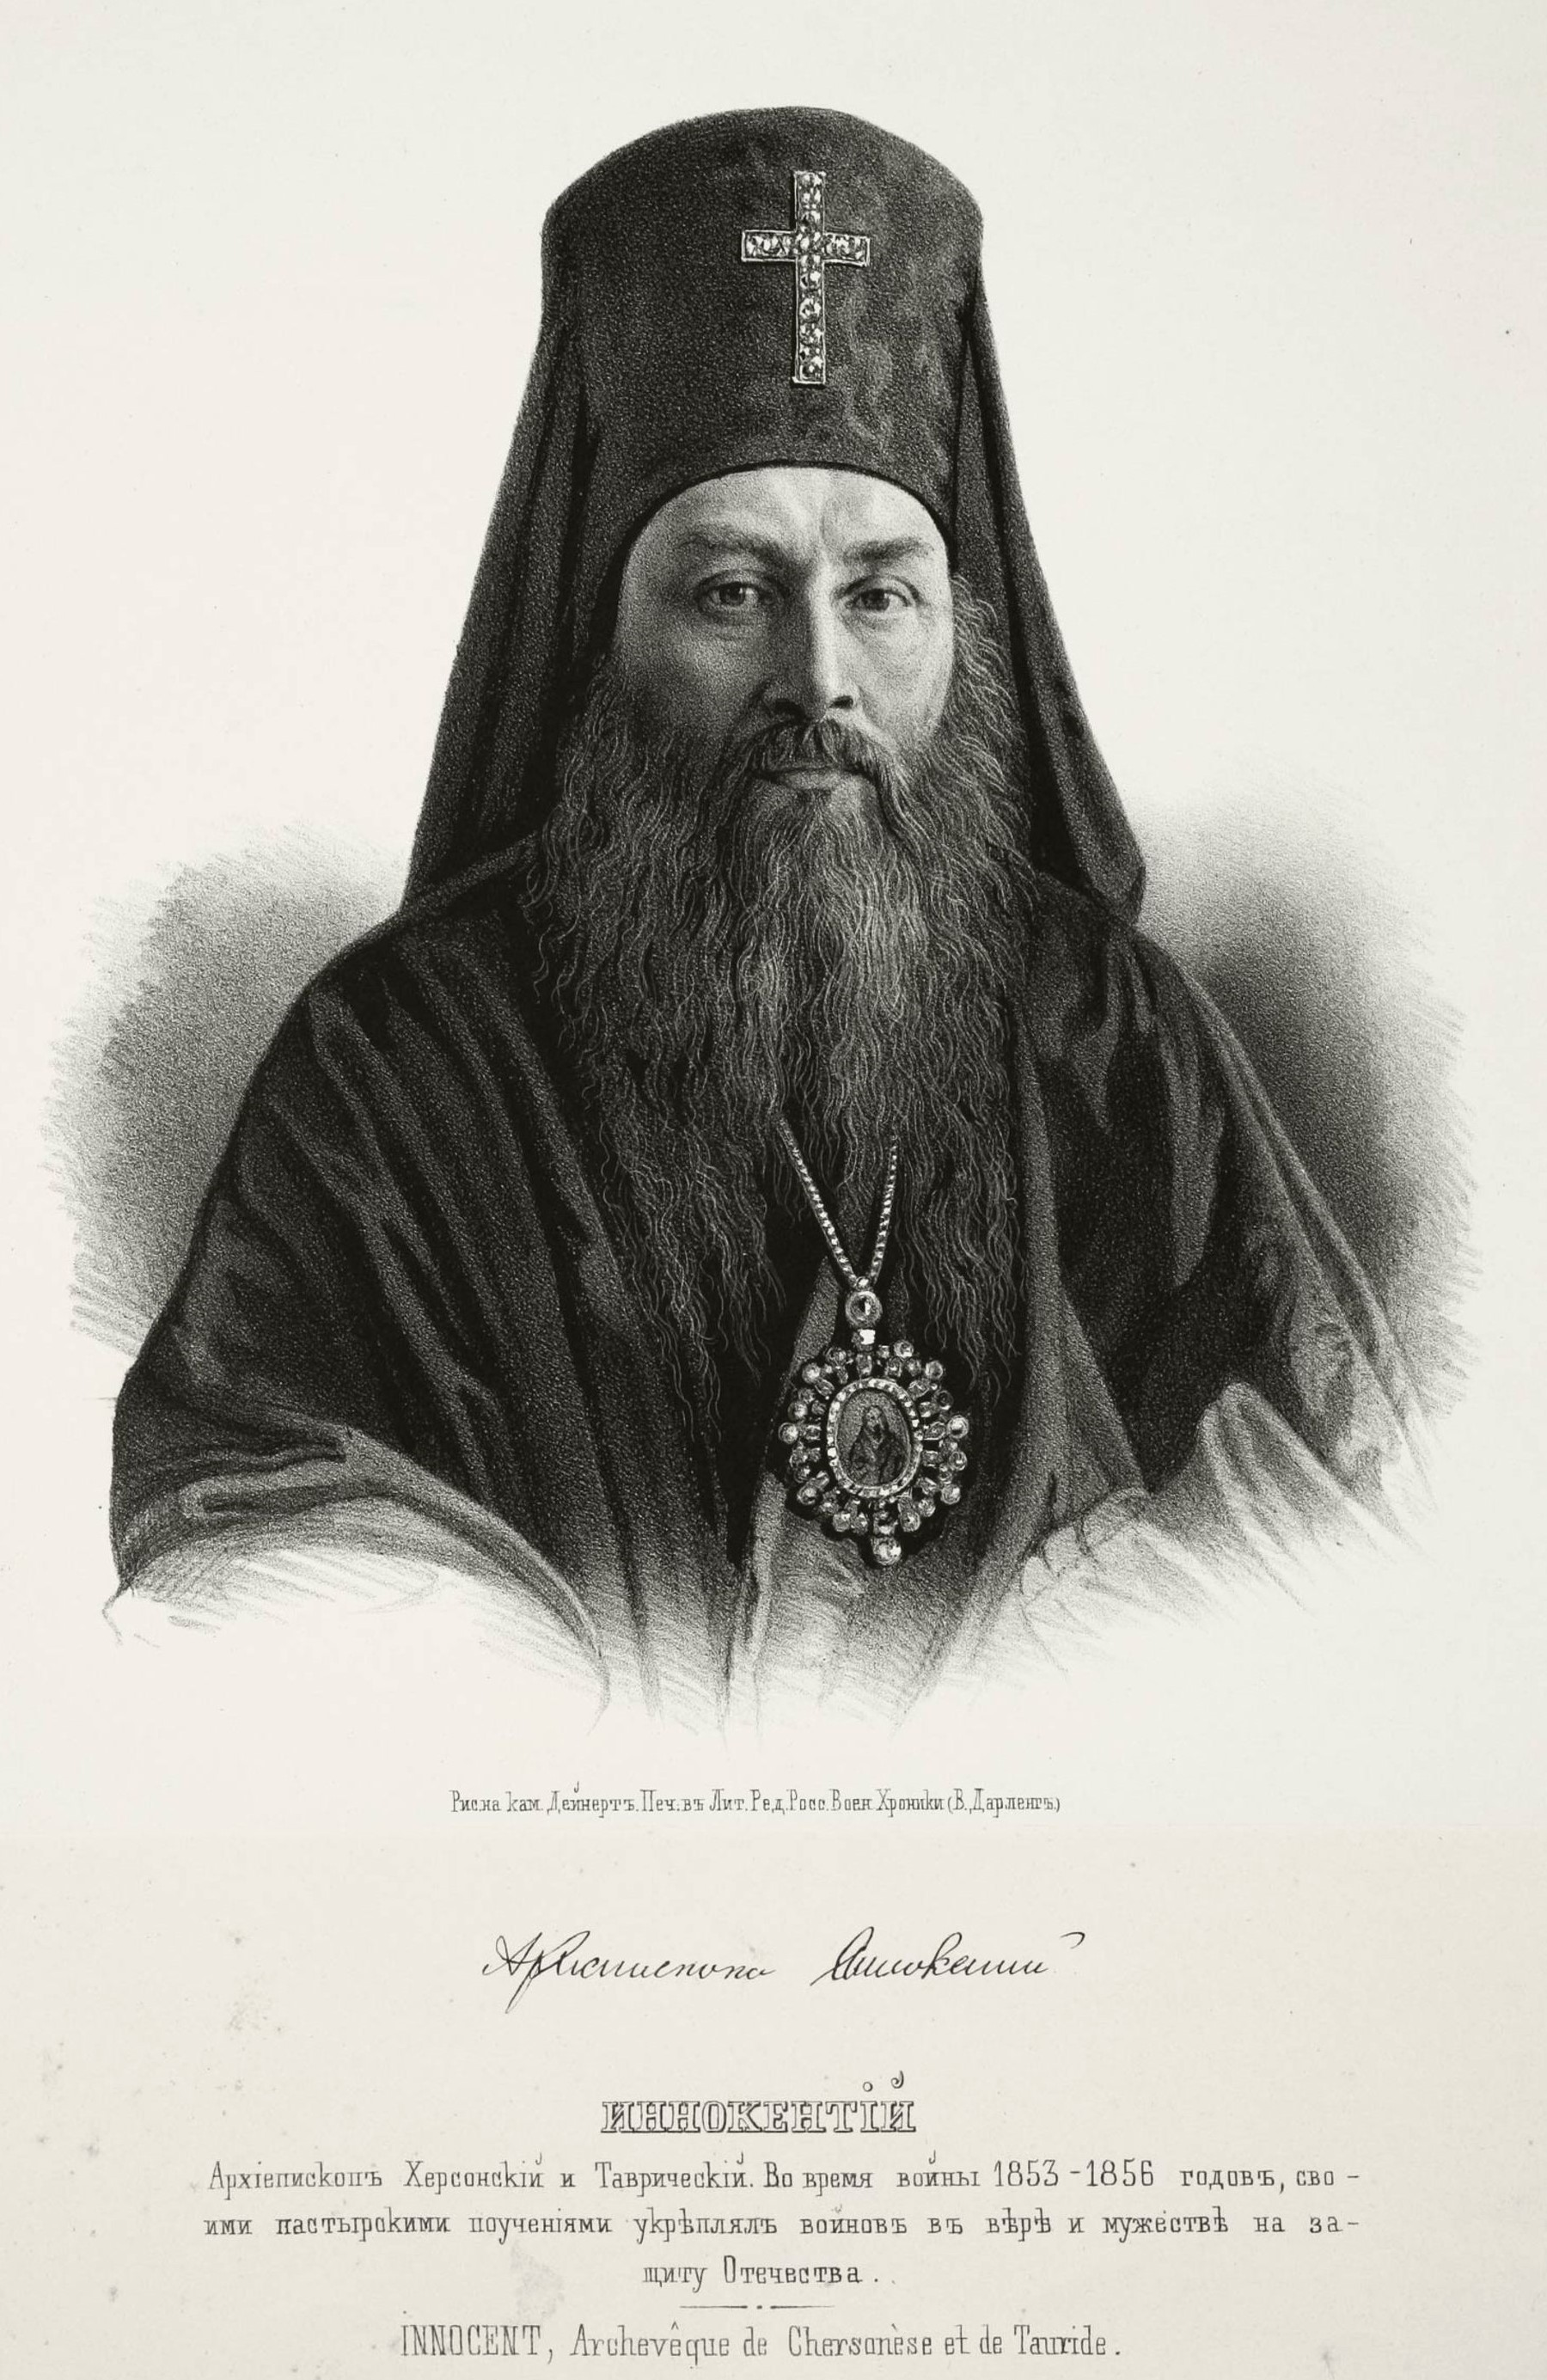 https://upload.wikimedia.org/wikipedia/commons/5/5a/Archbishop_Innocenty_Borisov.jpg